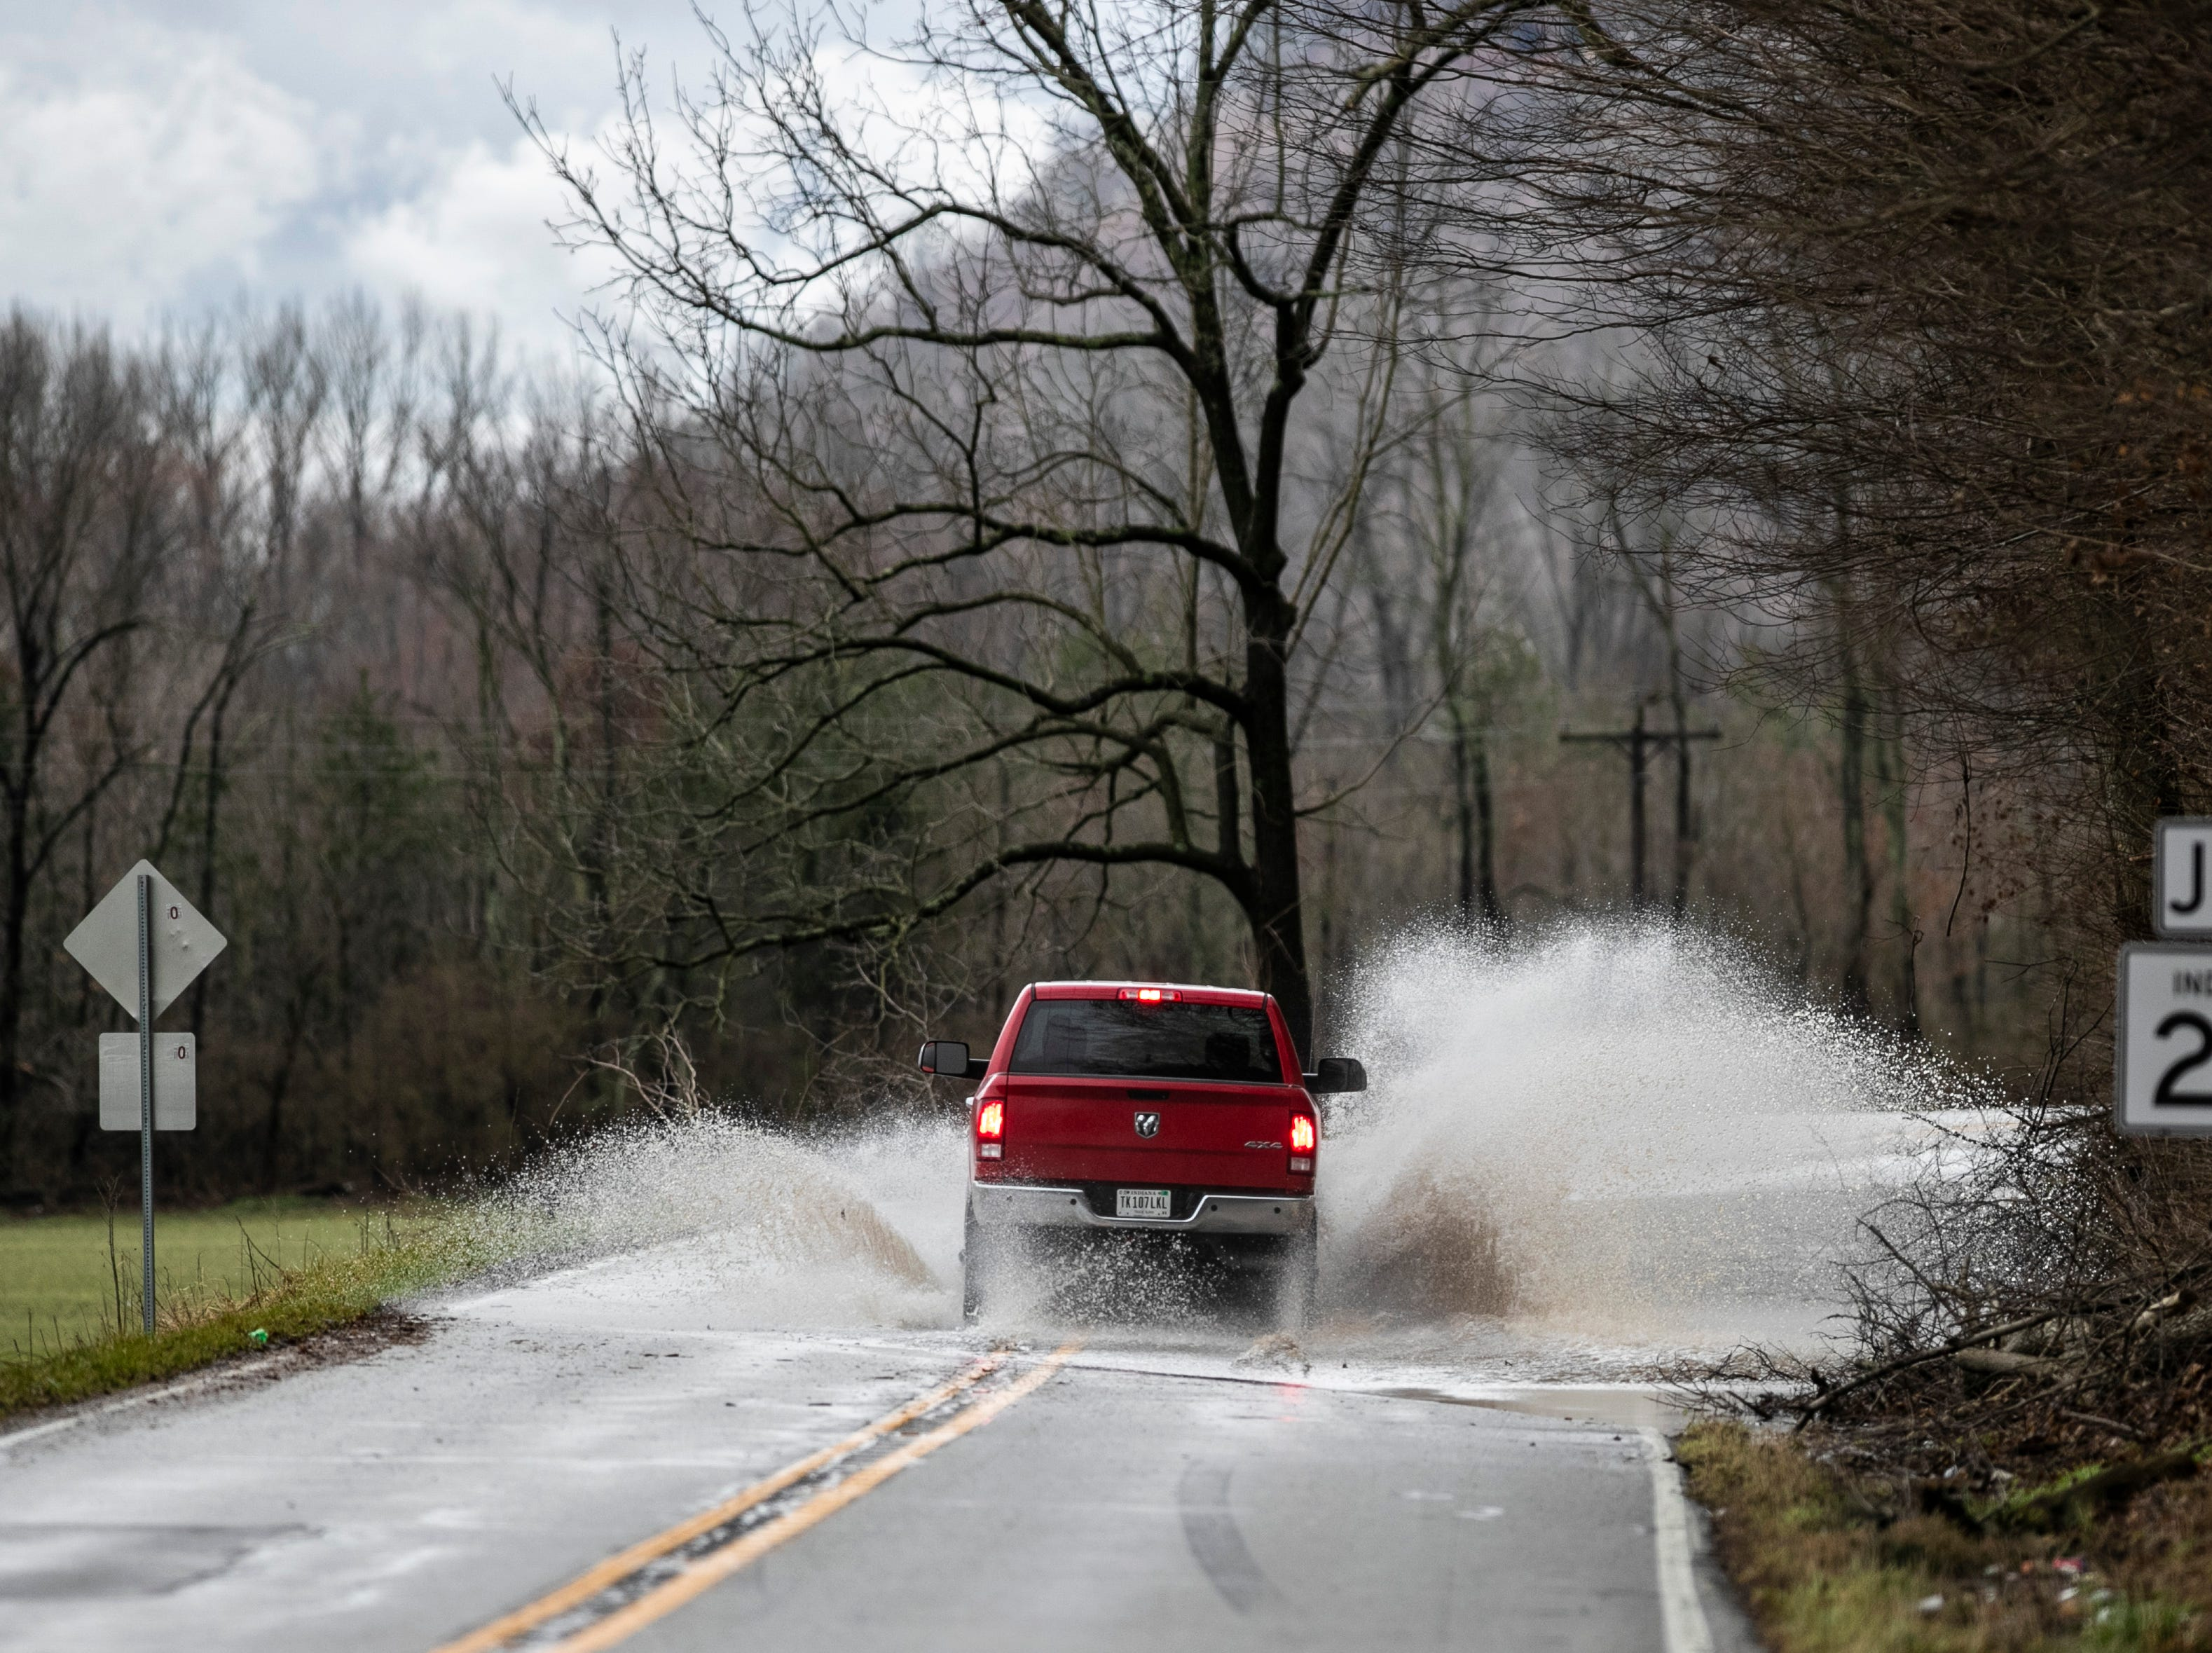 Drivers faced a flooded section of Highway 111 near the 211 junction Tuesday afternoon. Part of Highway 111 was closed due to rising water at various spots in Harrison County. Feb. 12, 2019